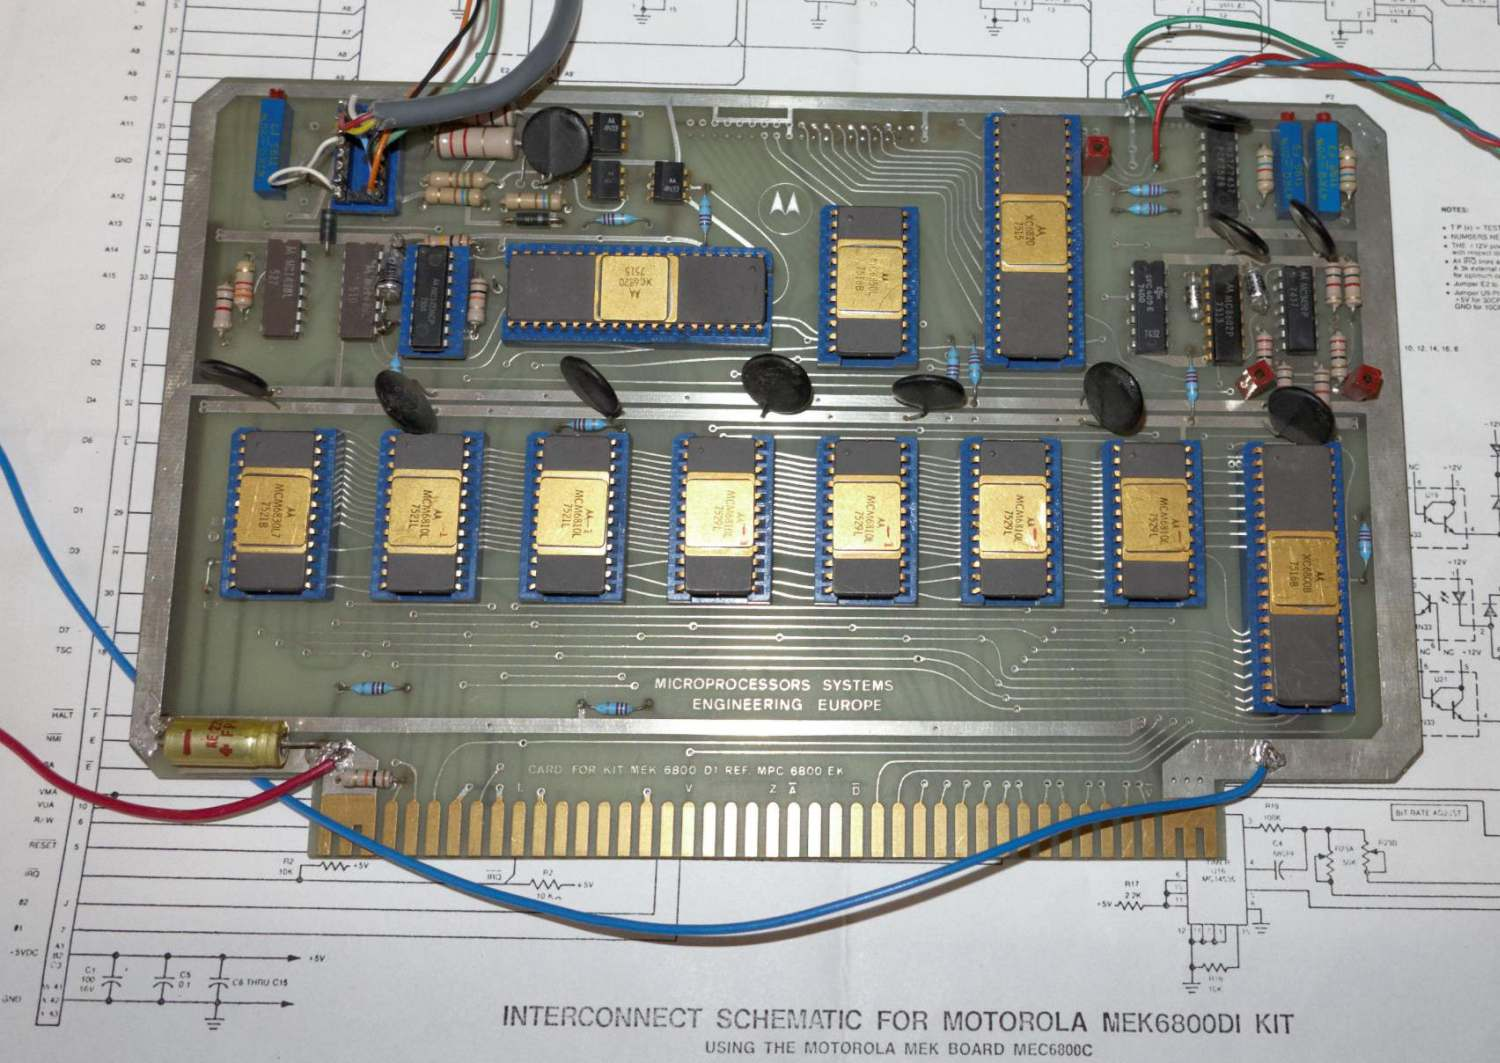 Luckily, the schematic diagram was still included in the documents : while  its quality is not outstanding, it was a great help during the restoration  ...